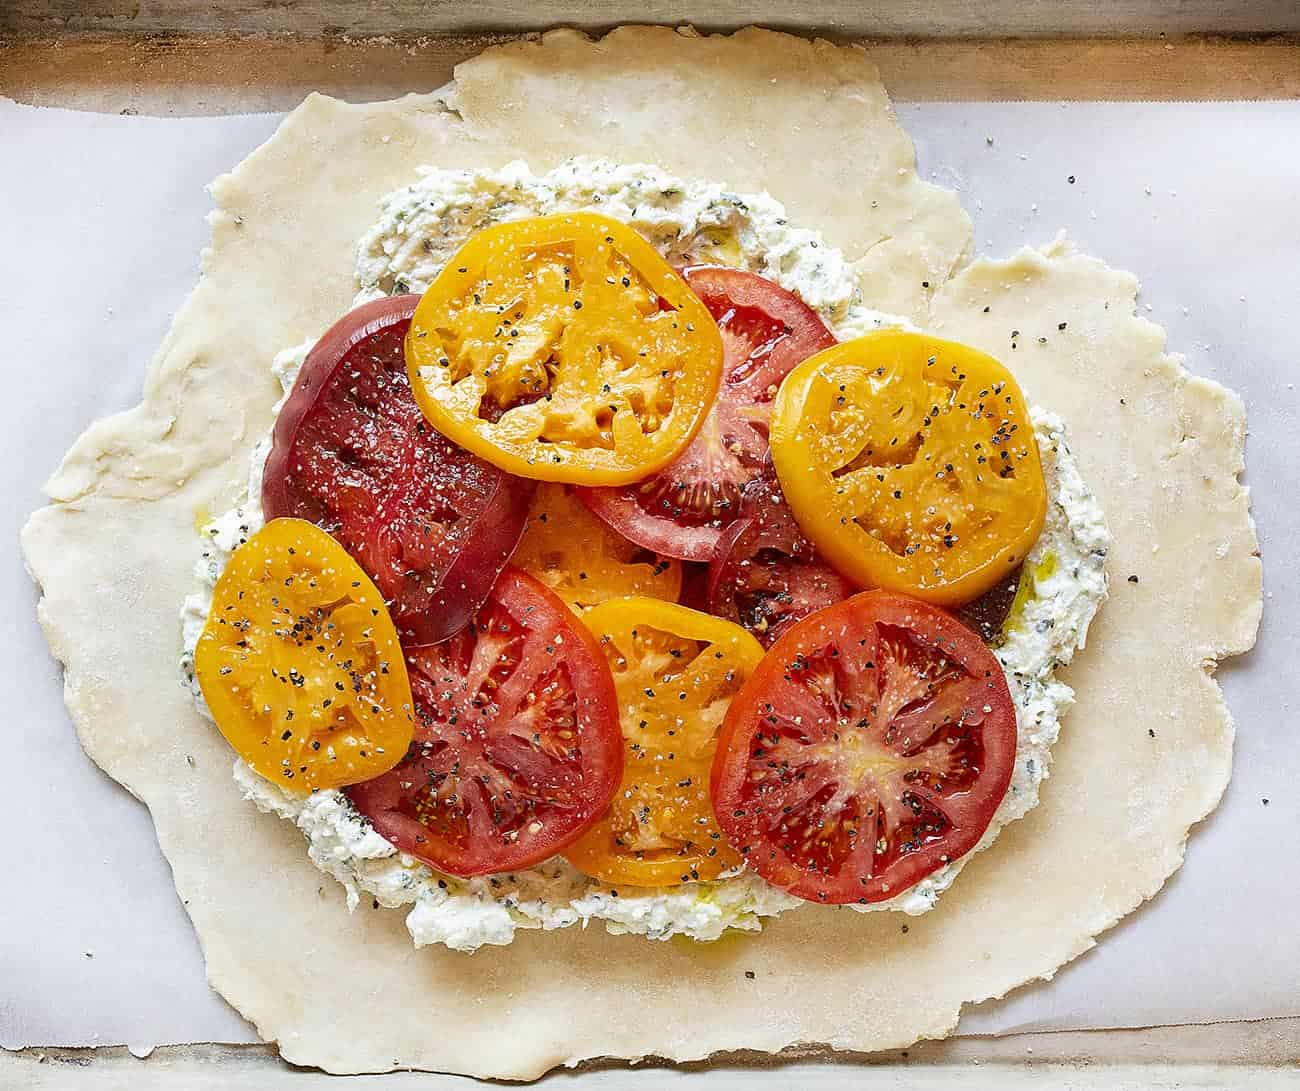 Ingredients When Assembling a Tomato Galette